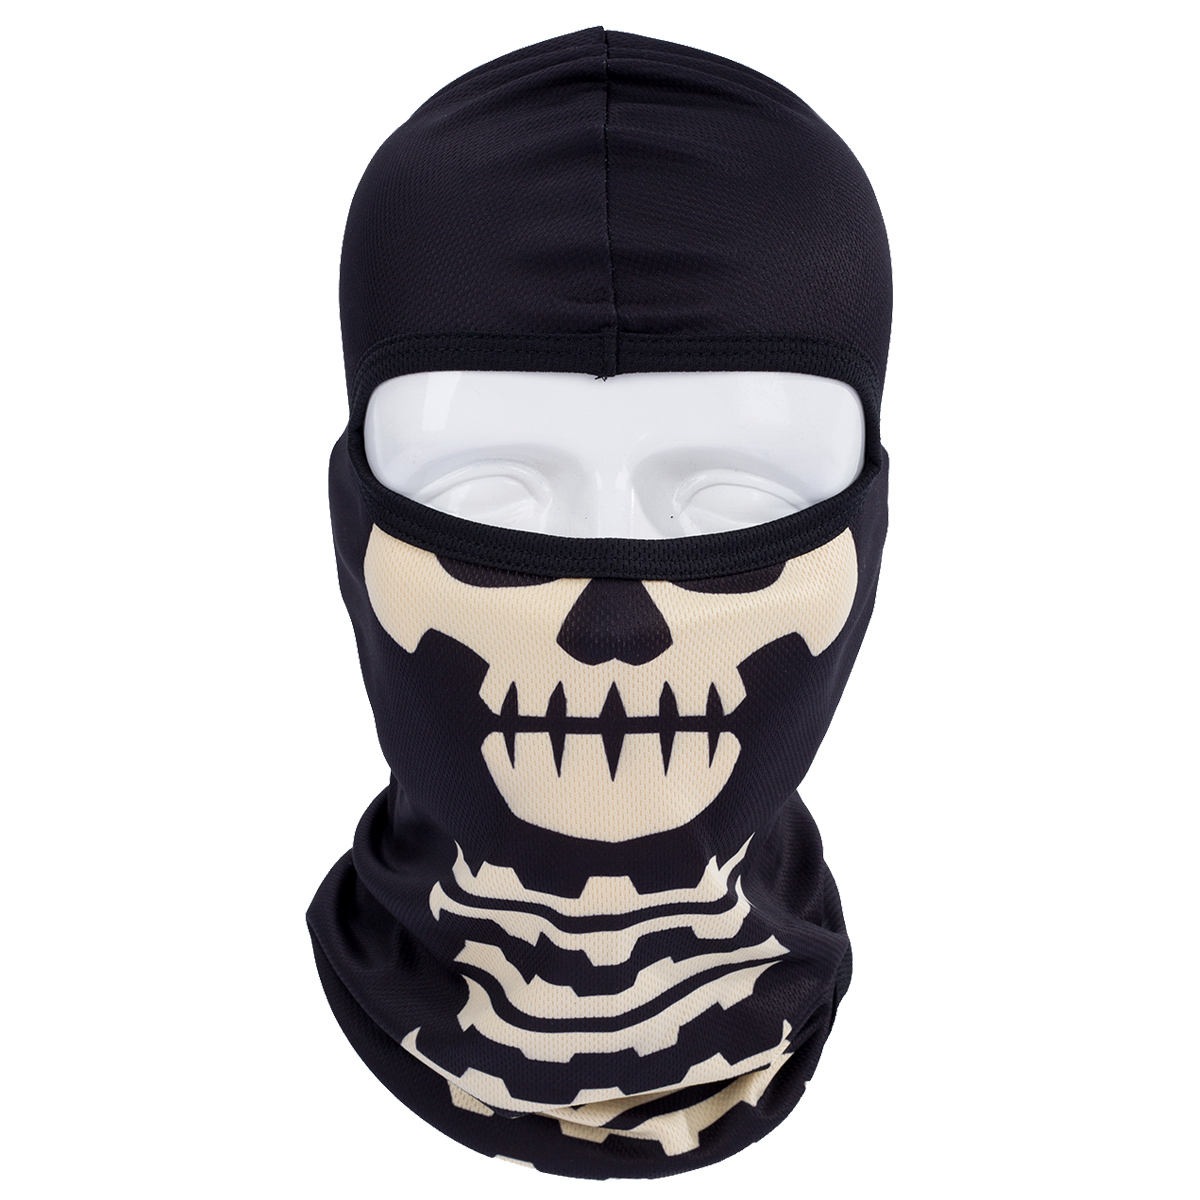 Compare Prices on Airsoft Ghost- Online Shopping/Buy Low Price ...